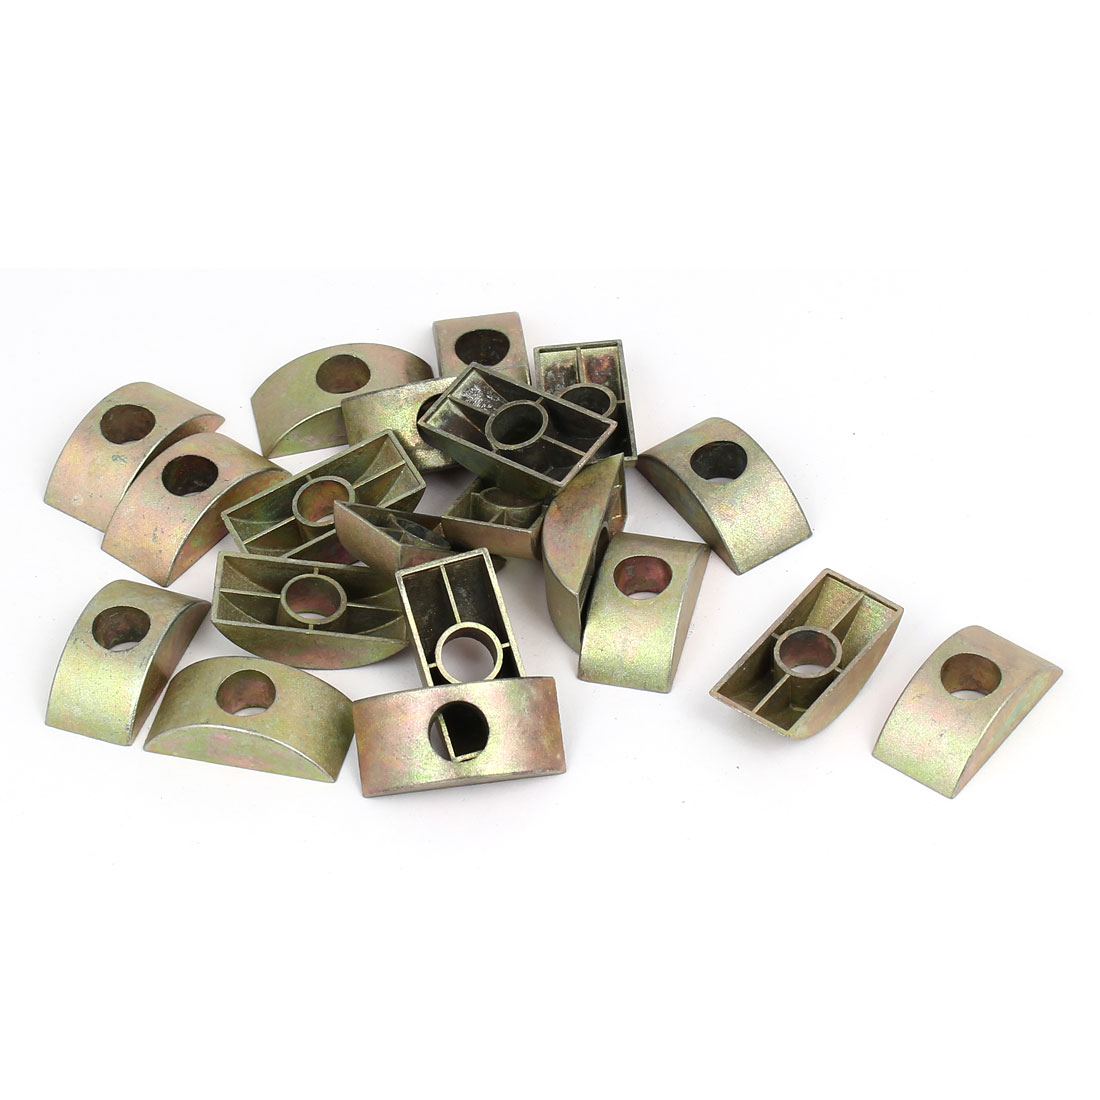 8.5mm Hole Dia Furniture Connector Half Moon Spacers Washer Bronze Tone 20PCS